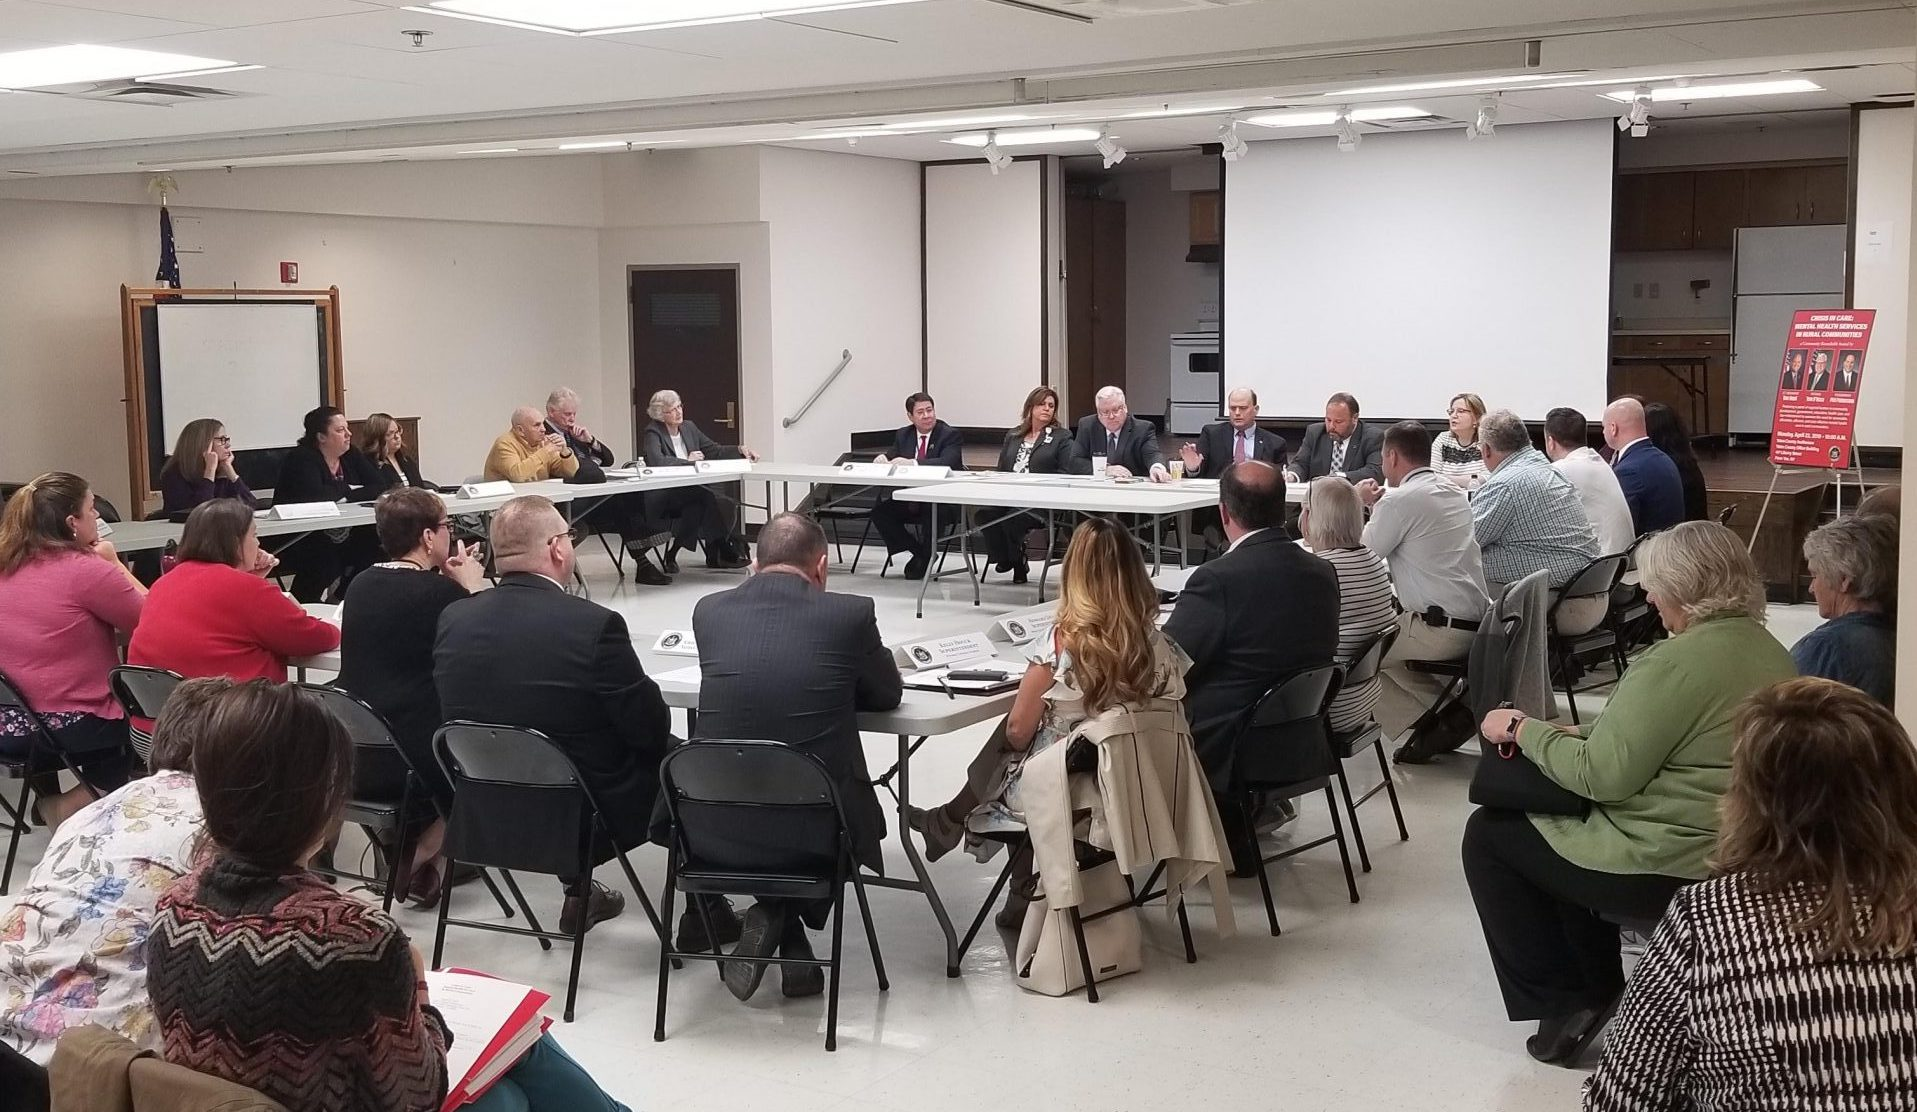 Roundtable on mental health services in the Finger Lakes held in Penn Yan